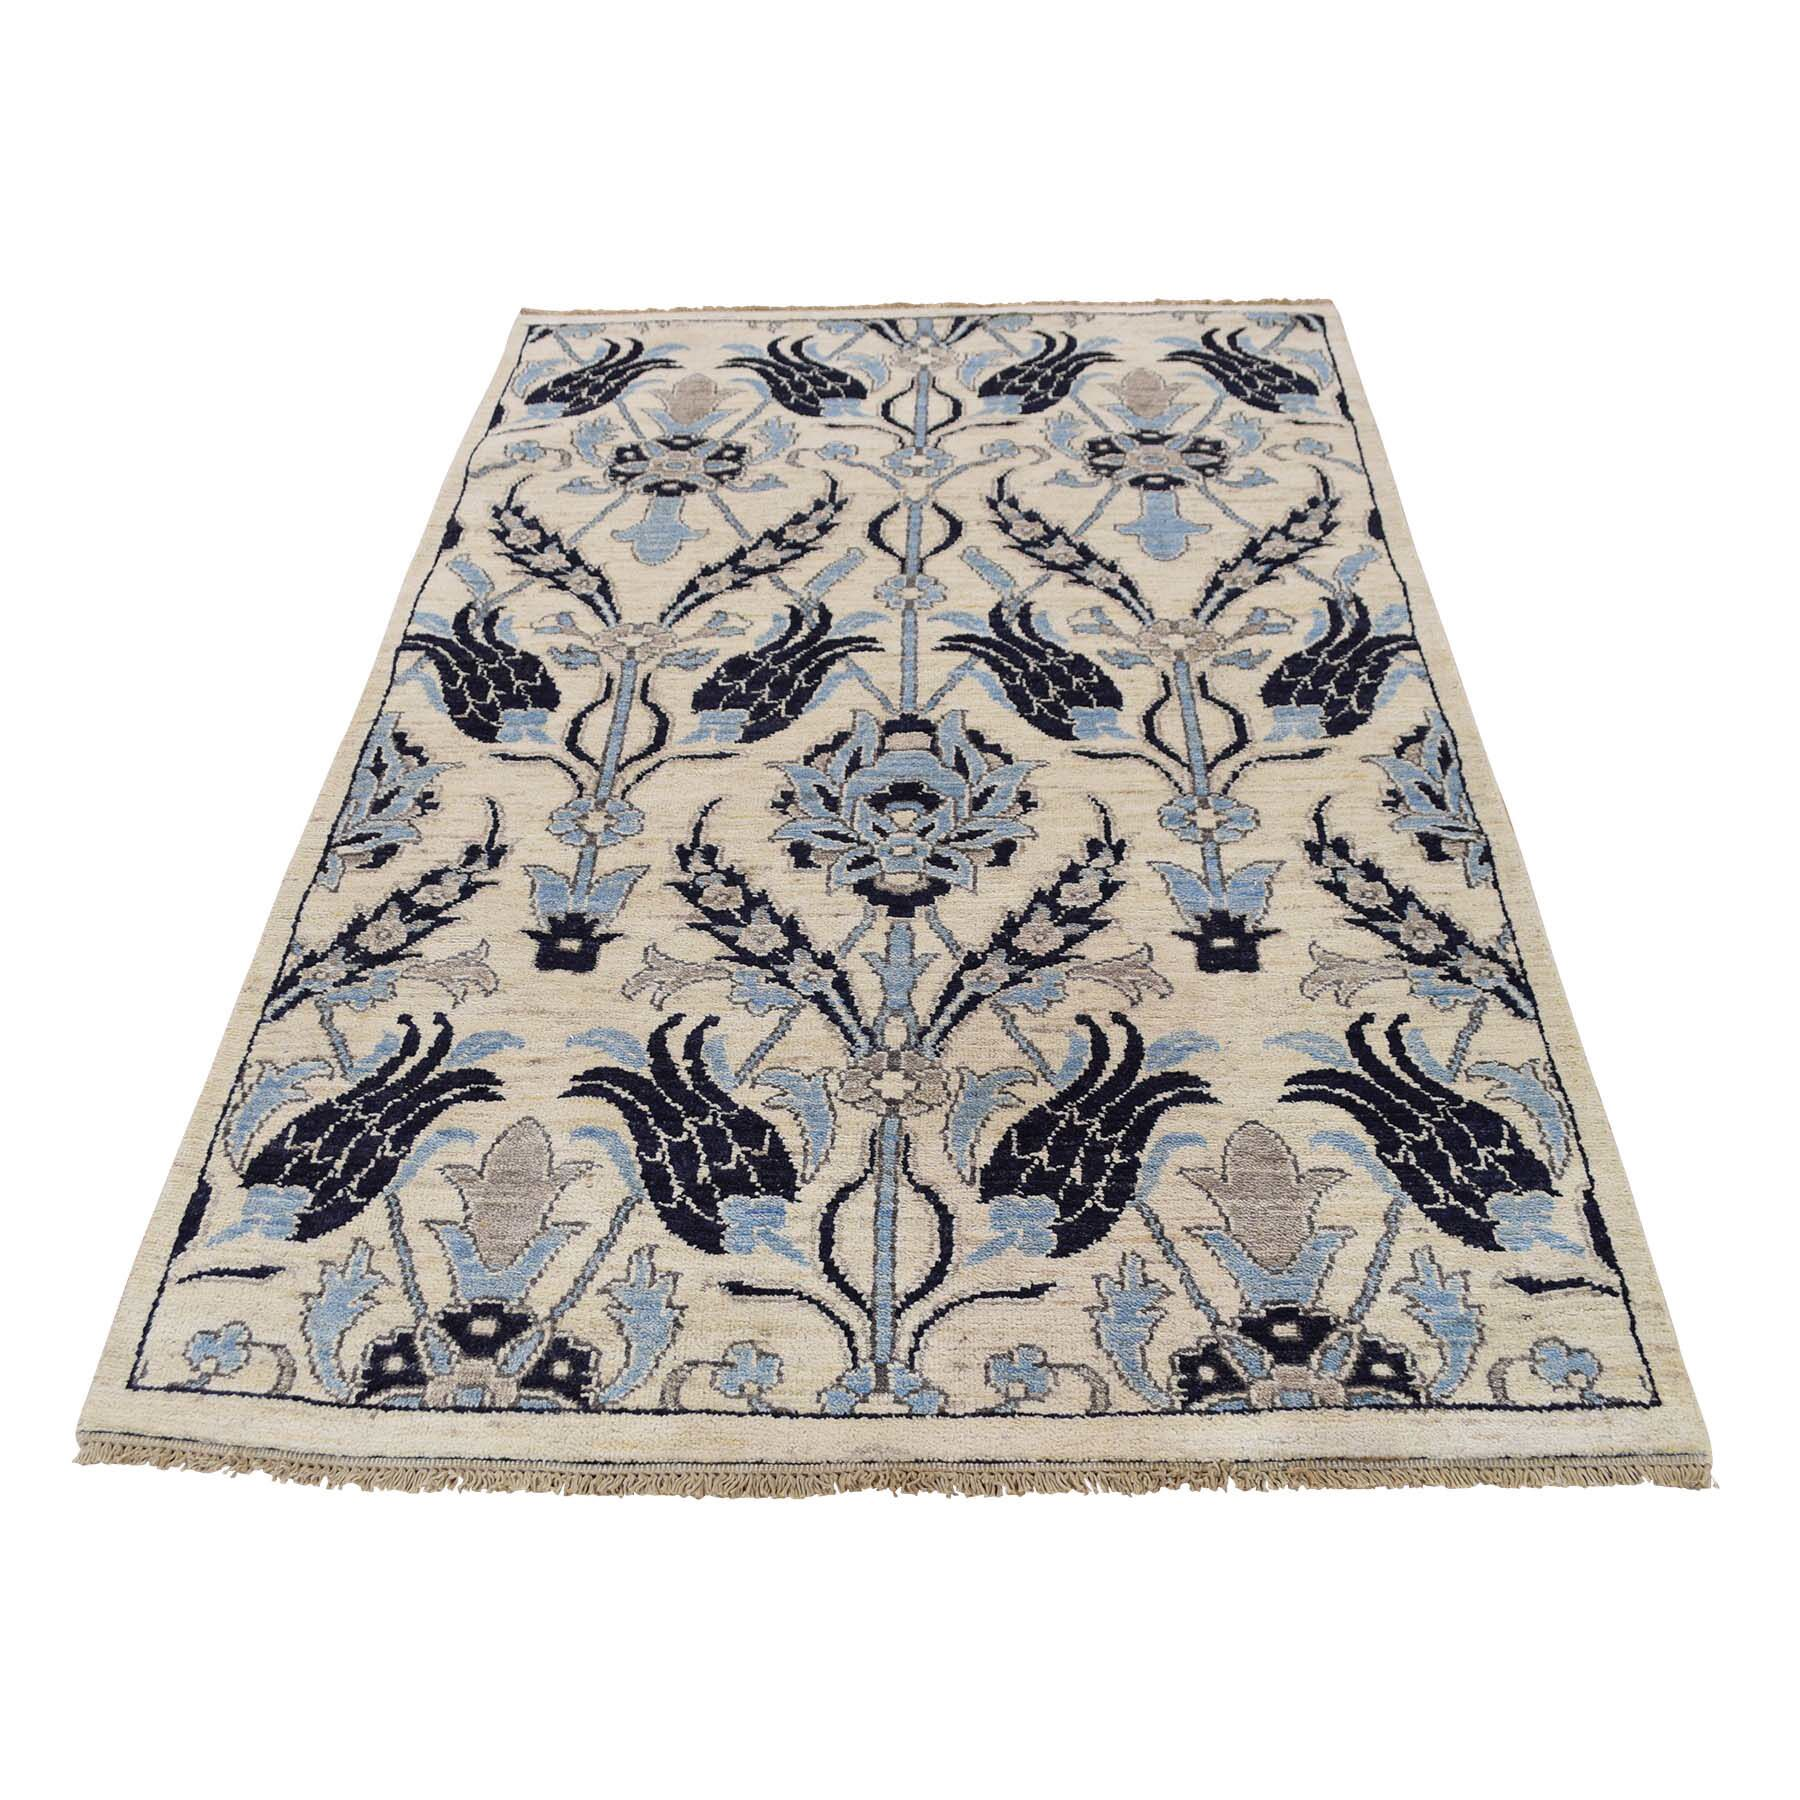 One-of-a-Kind Kells-Connor Overdyed Mazlaghan Vintage Hand-Knotted Ivory/Blue Area Rug